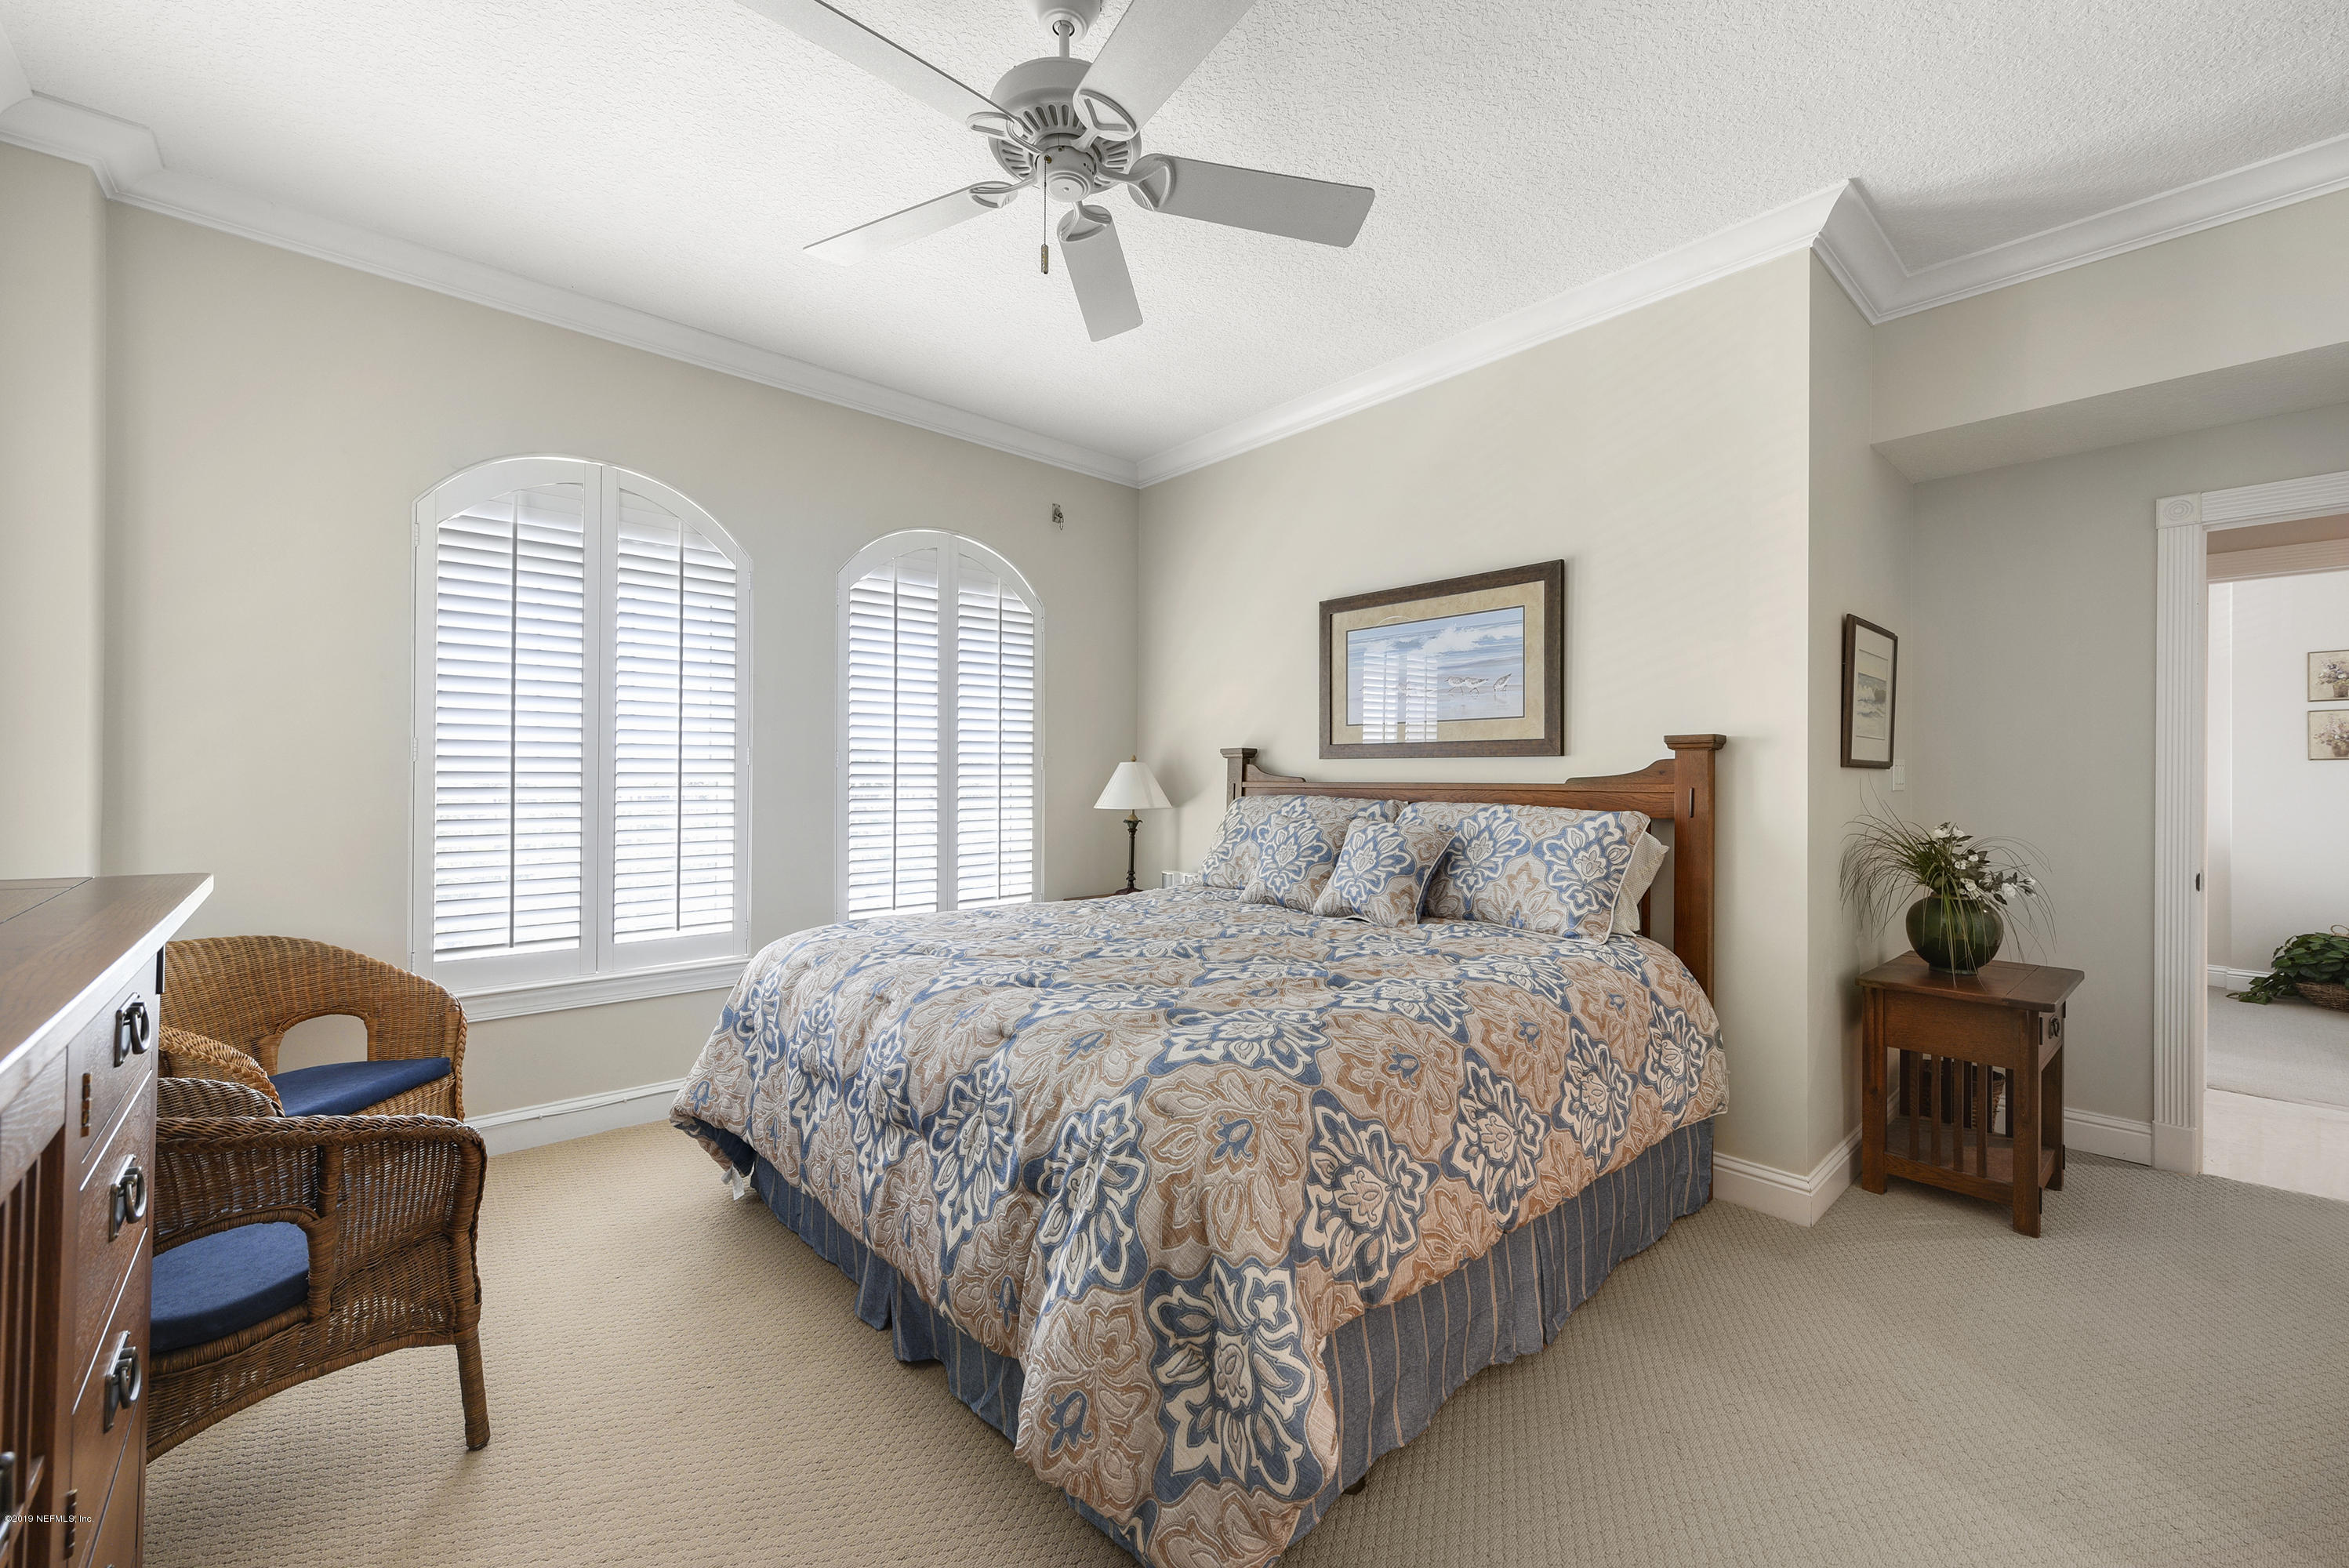 110 SERENATA- PONTE VEDRA BEACH- FLORIDA 32082, 4 Bedrooms Bedrooms, ,3 BathroomsBathrooms,Condo,For sale,SERENATA,990964